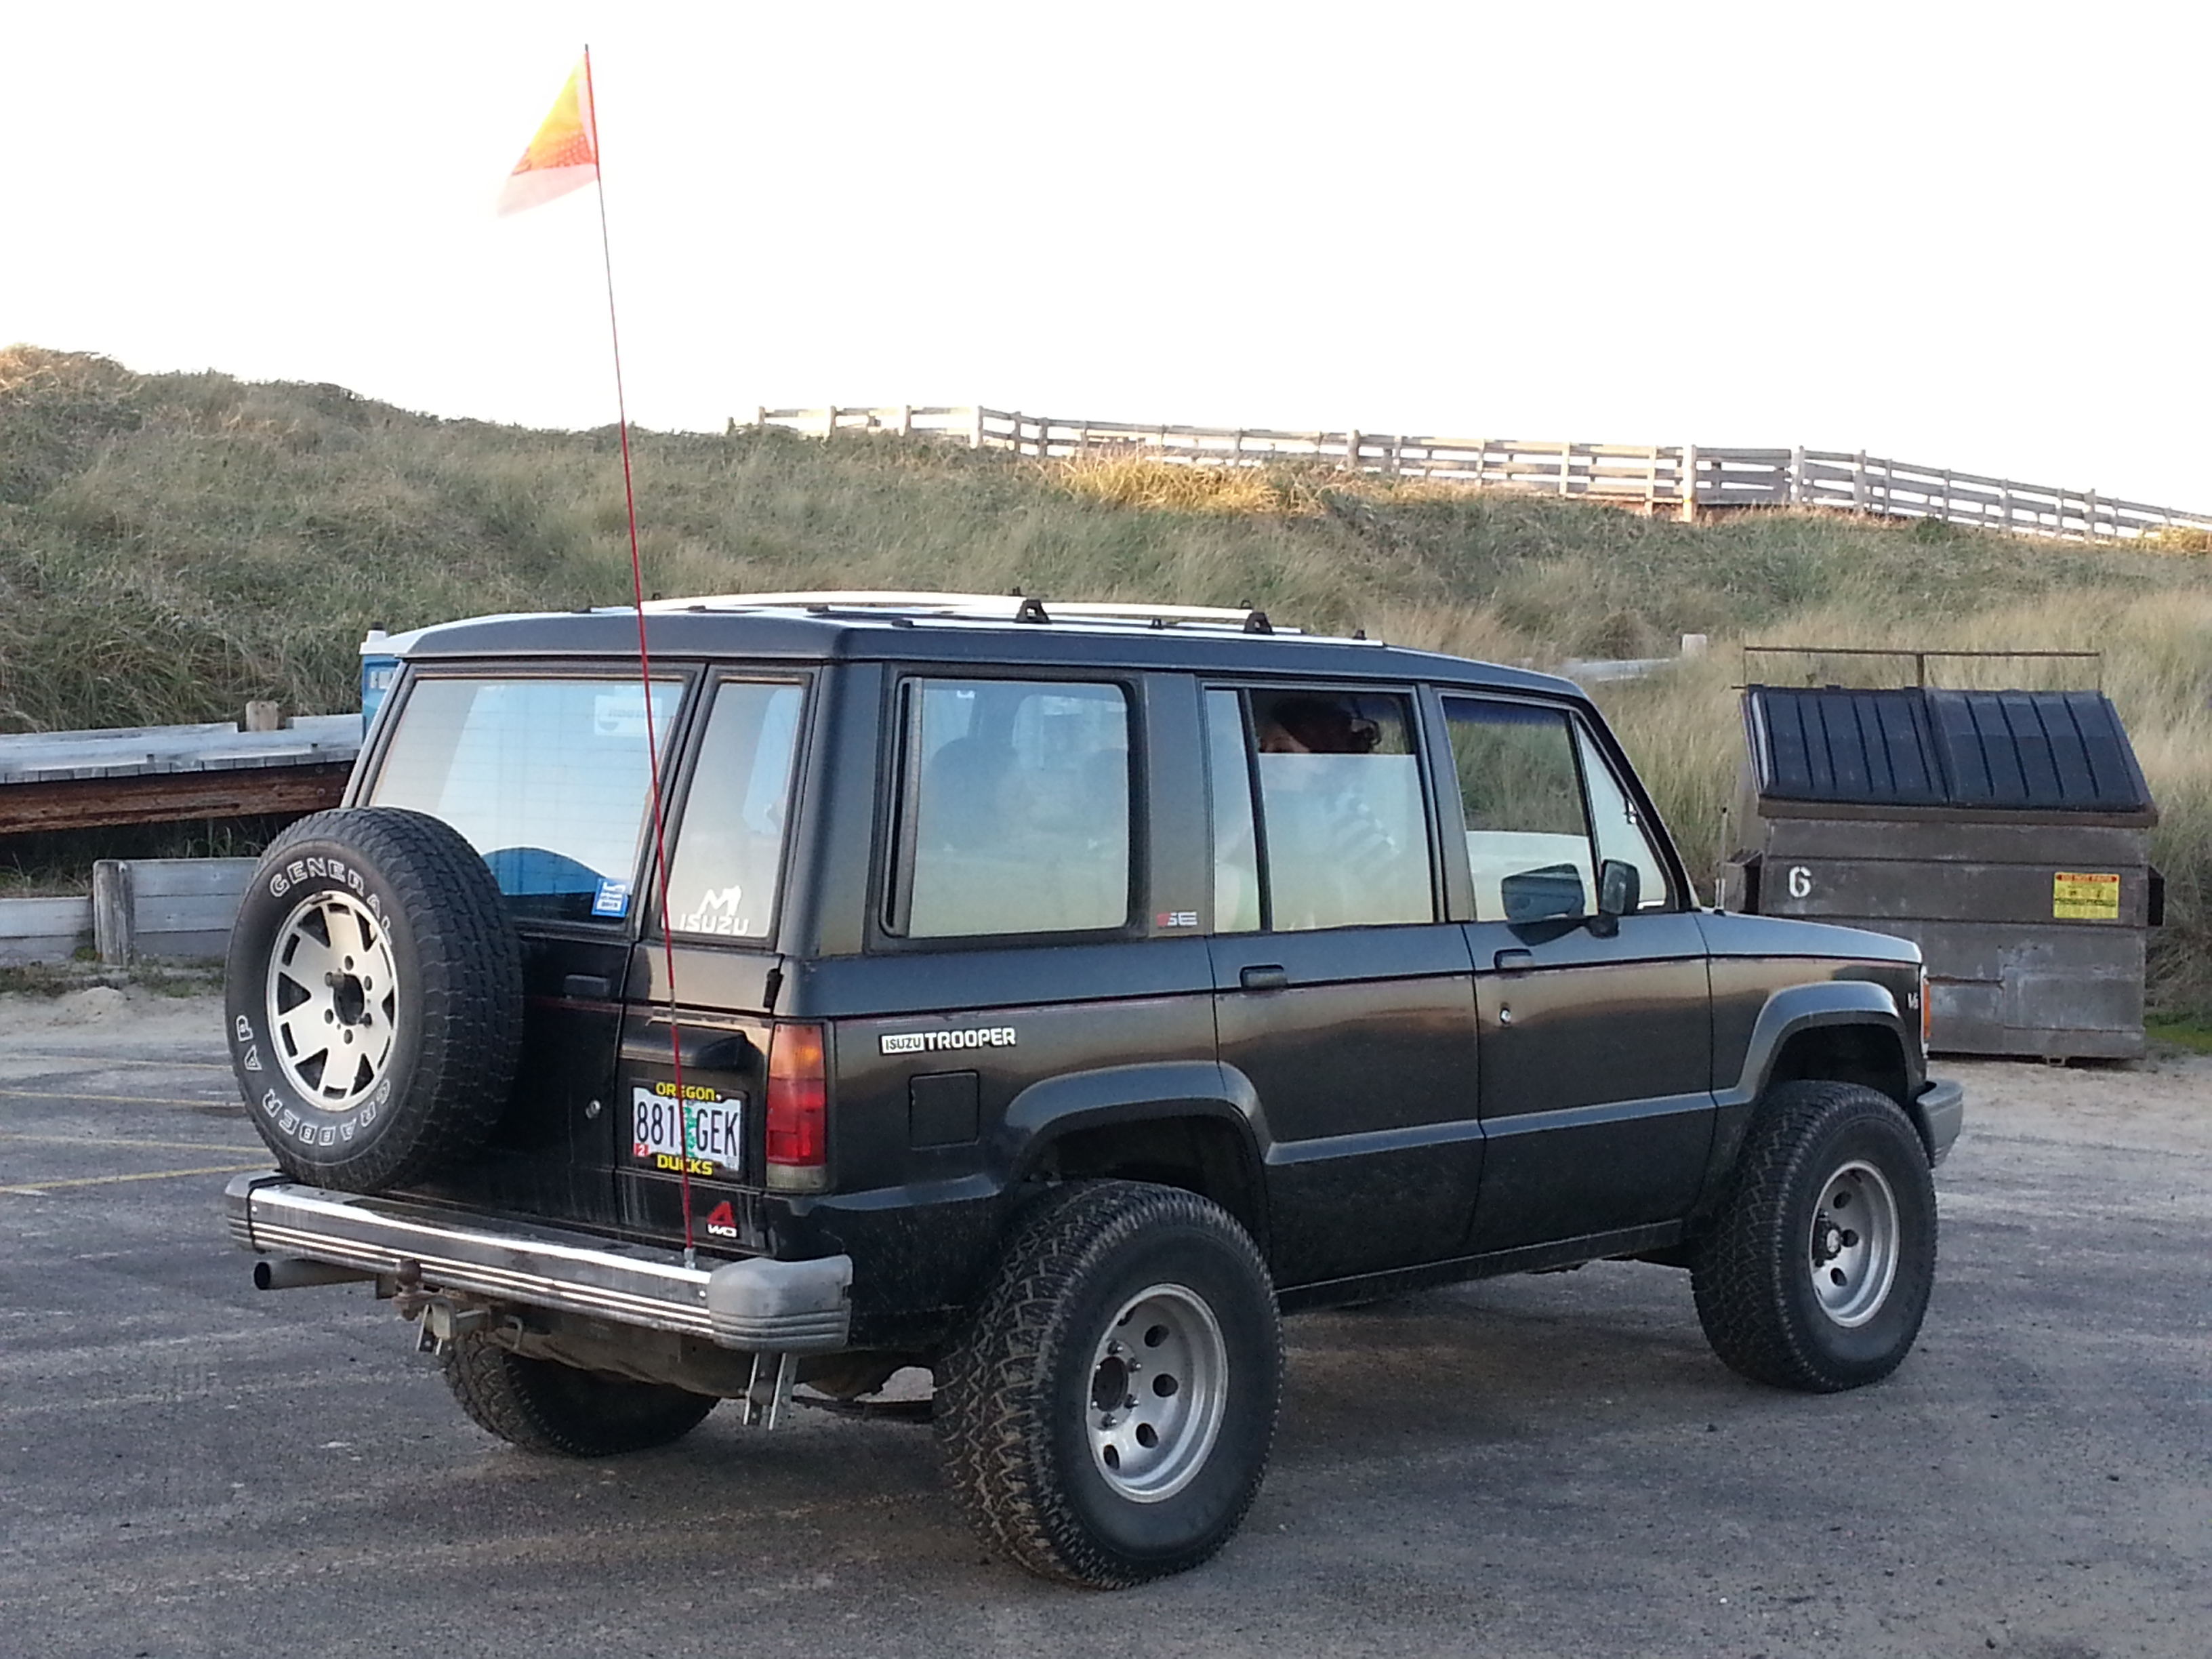 Anthony Demotte's 1991 Isuzu Trooper